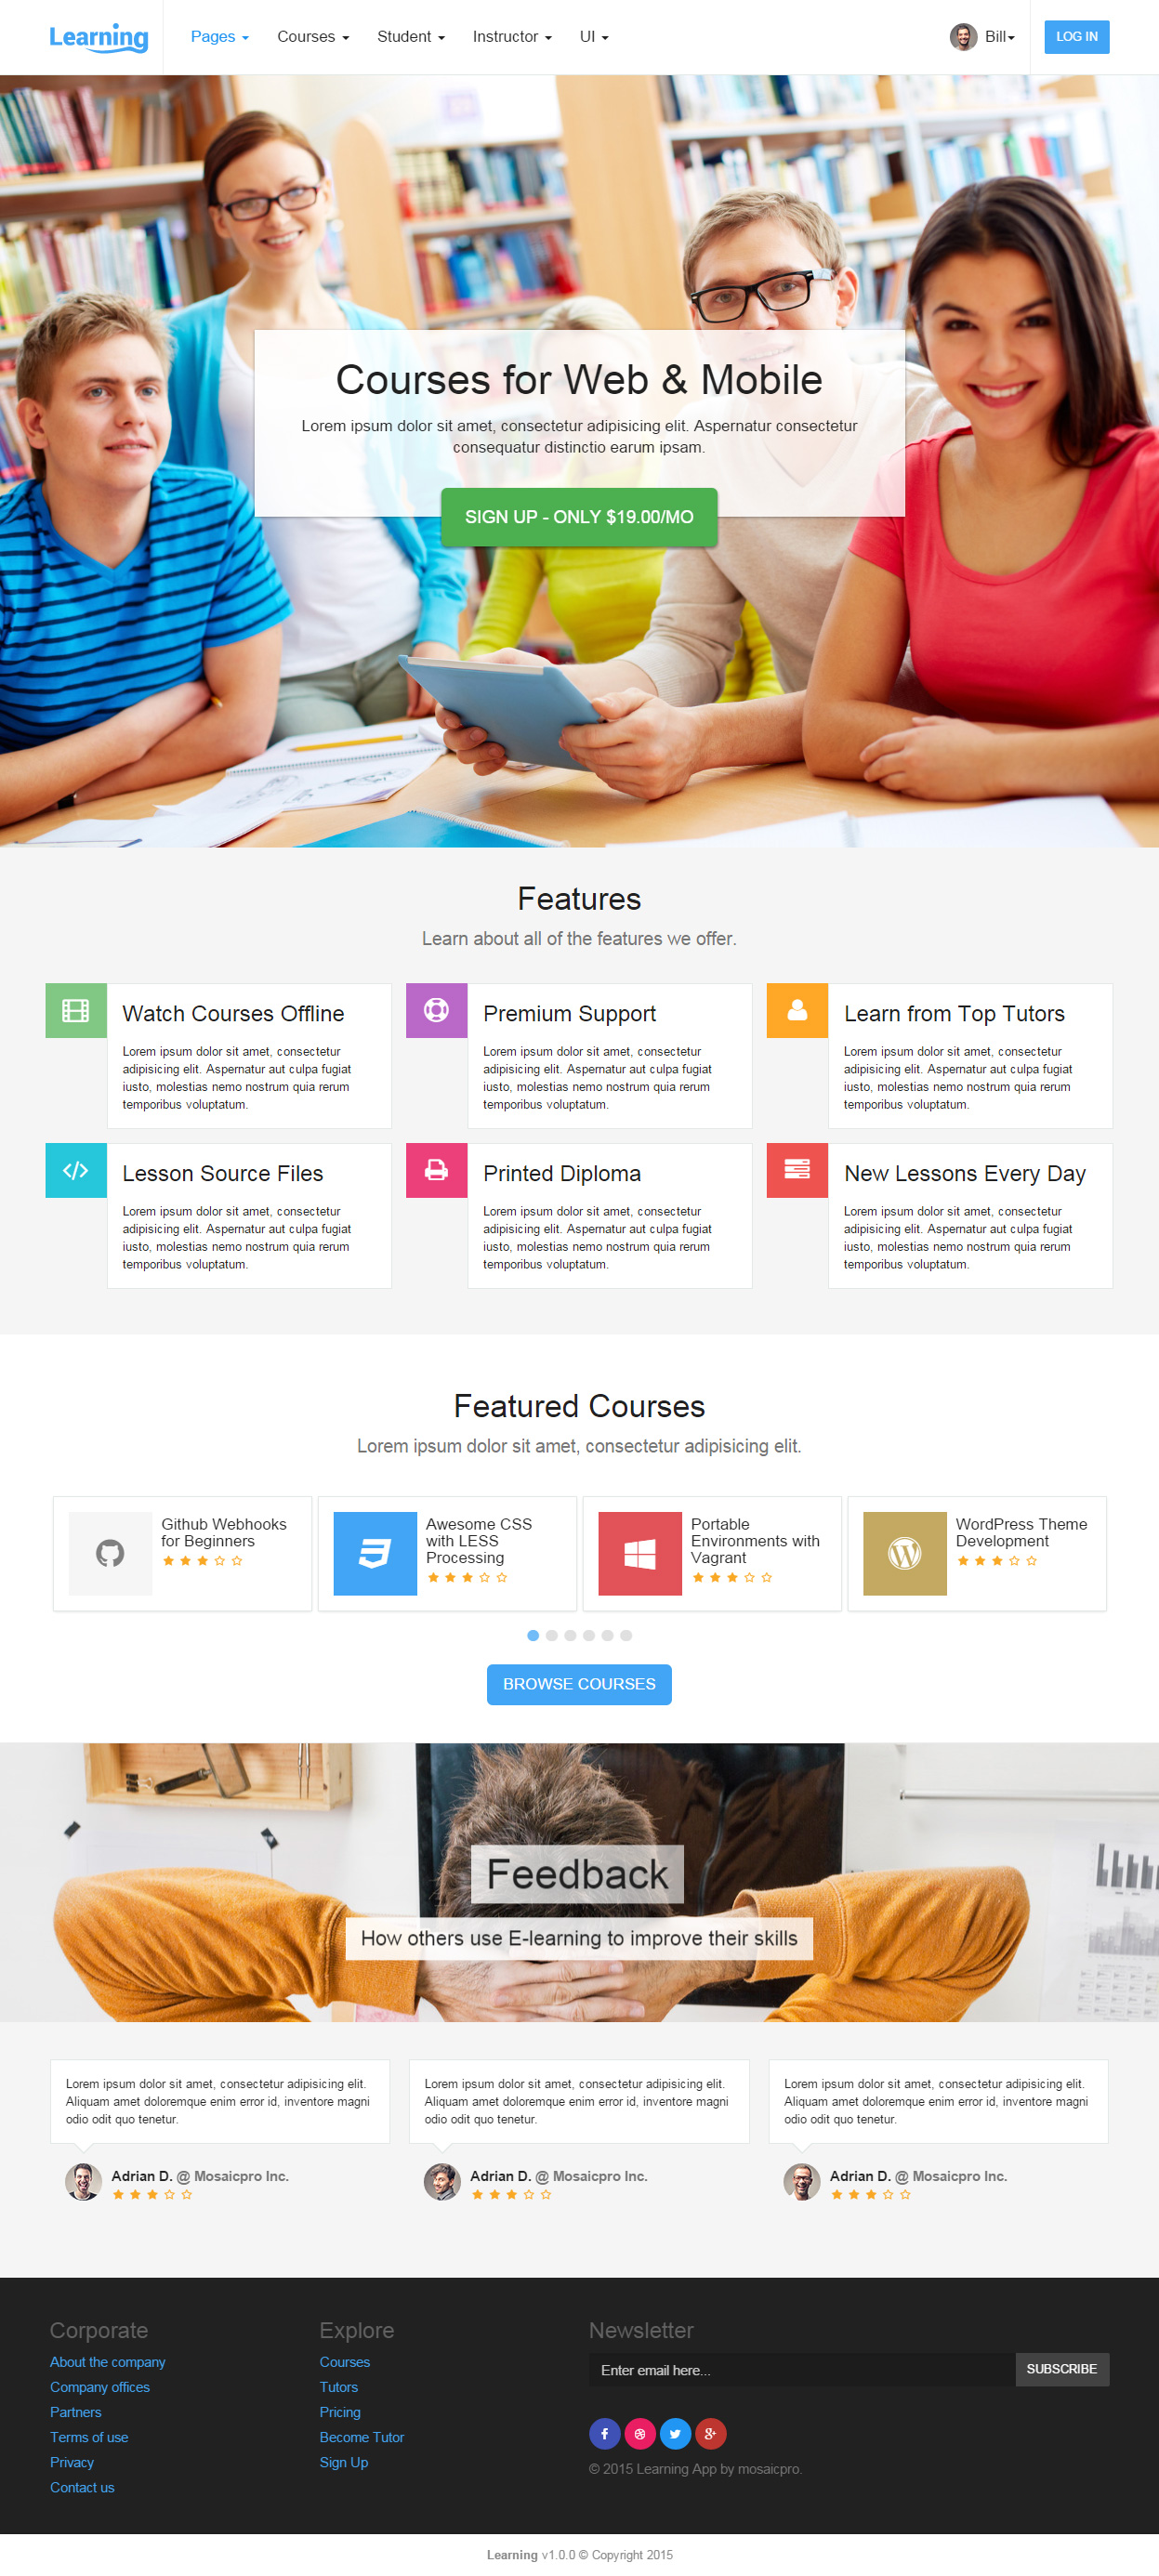 Best Responsive Html5 Learning Management System Templates In 2015